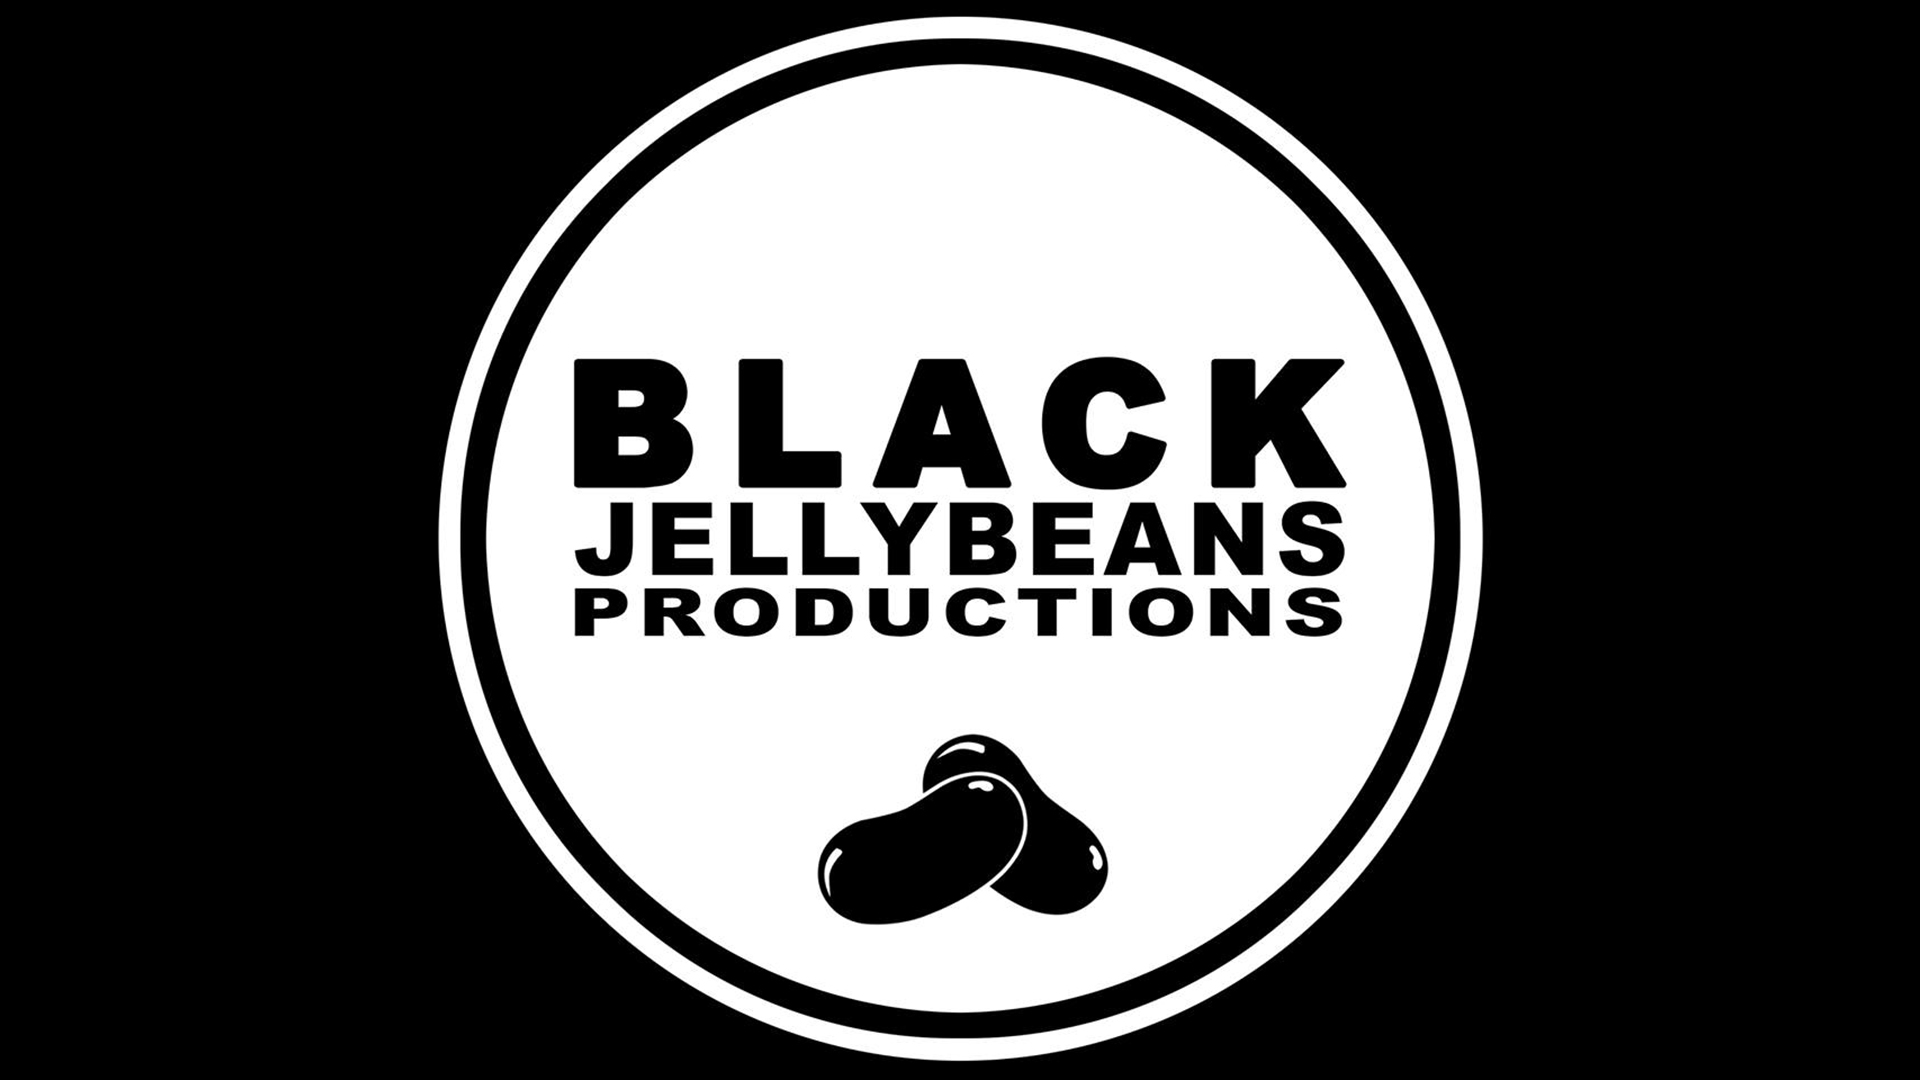 Black Jellybeans Channel